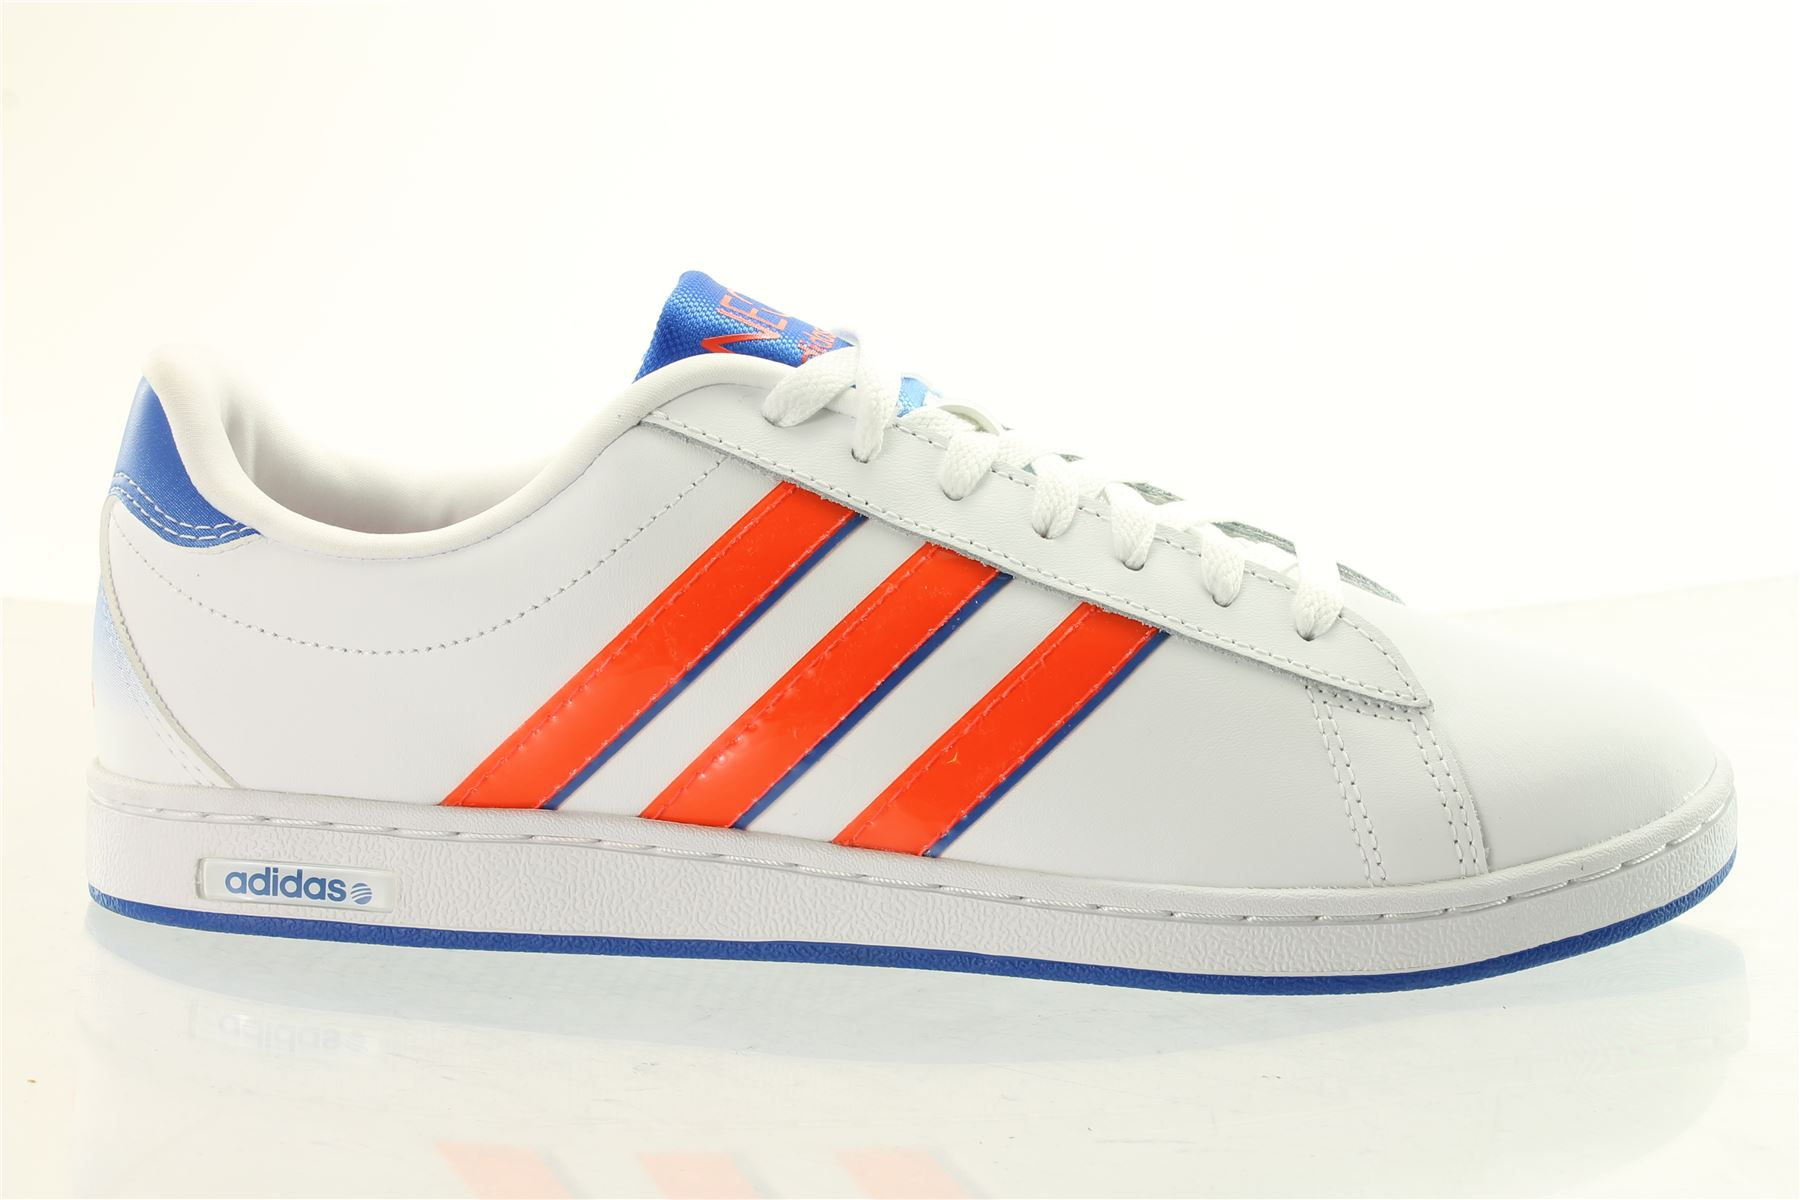 new mens adidas derby trainers neo label 4 great colours. Black Bedroom Furniture Sets. Home Design Ideas